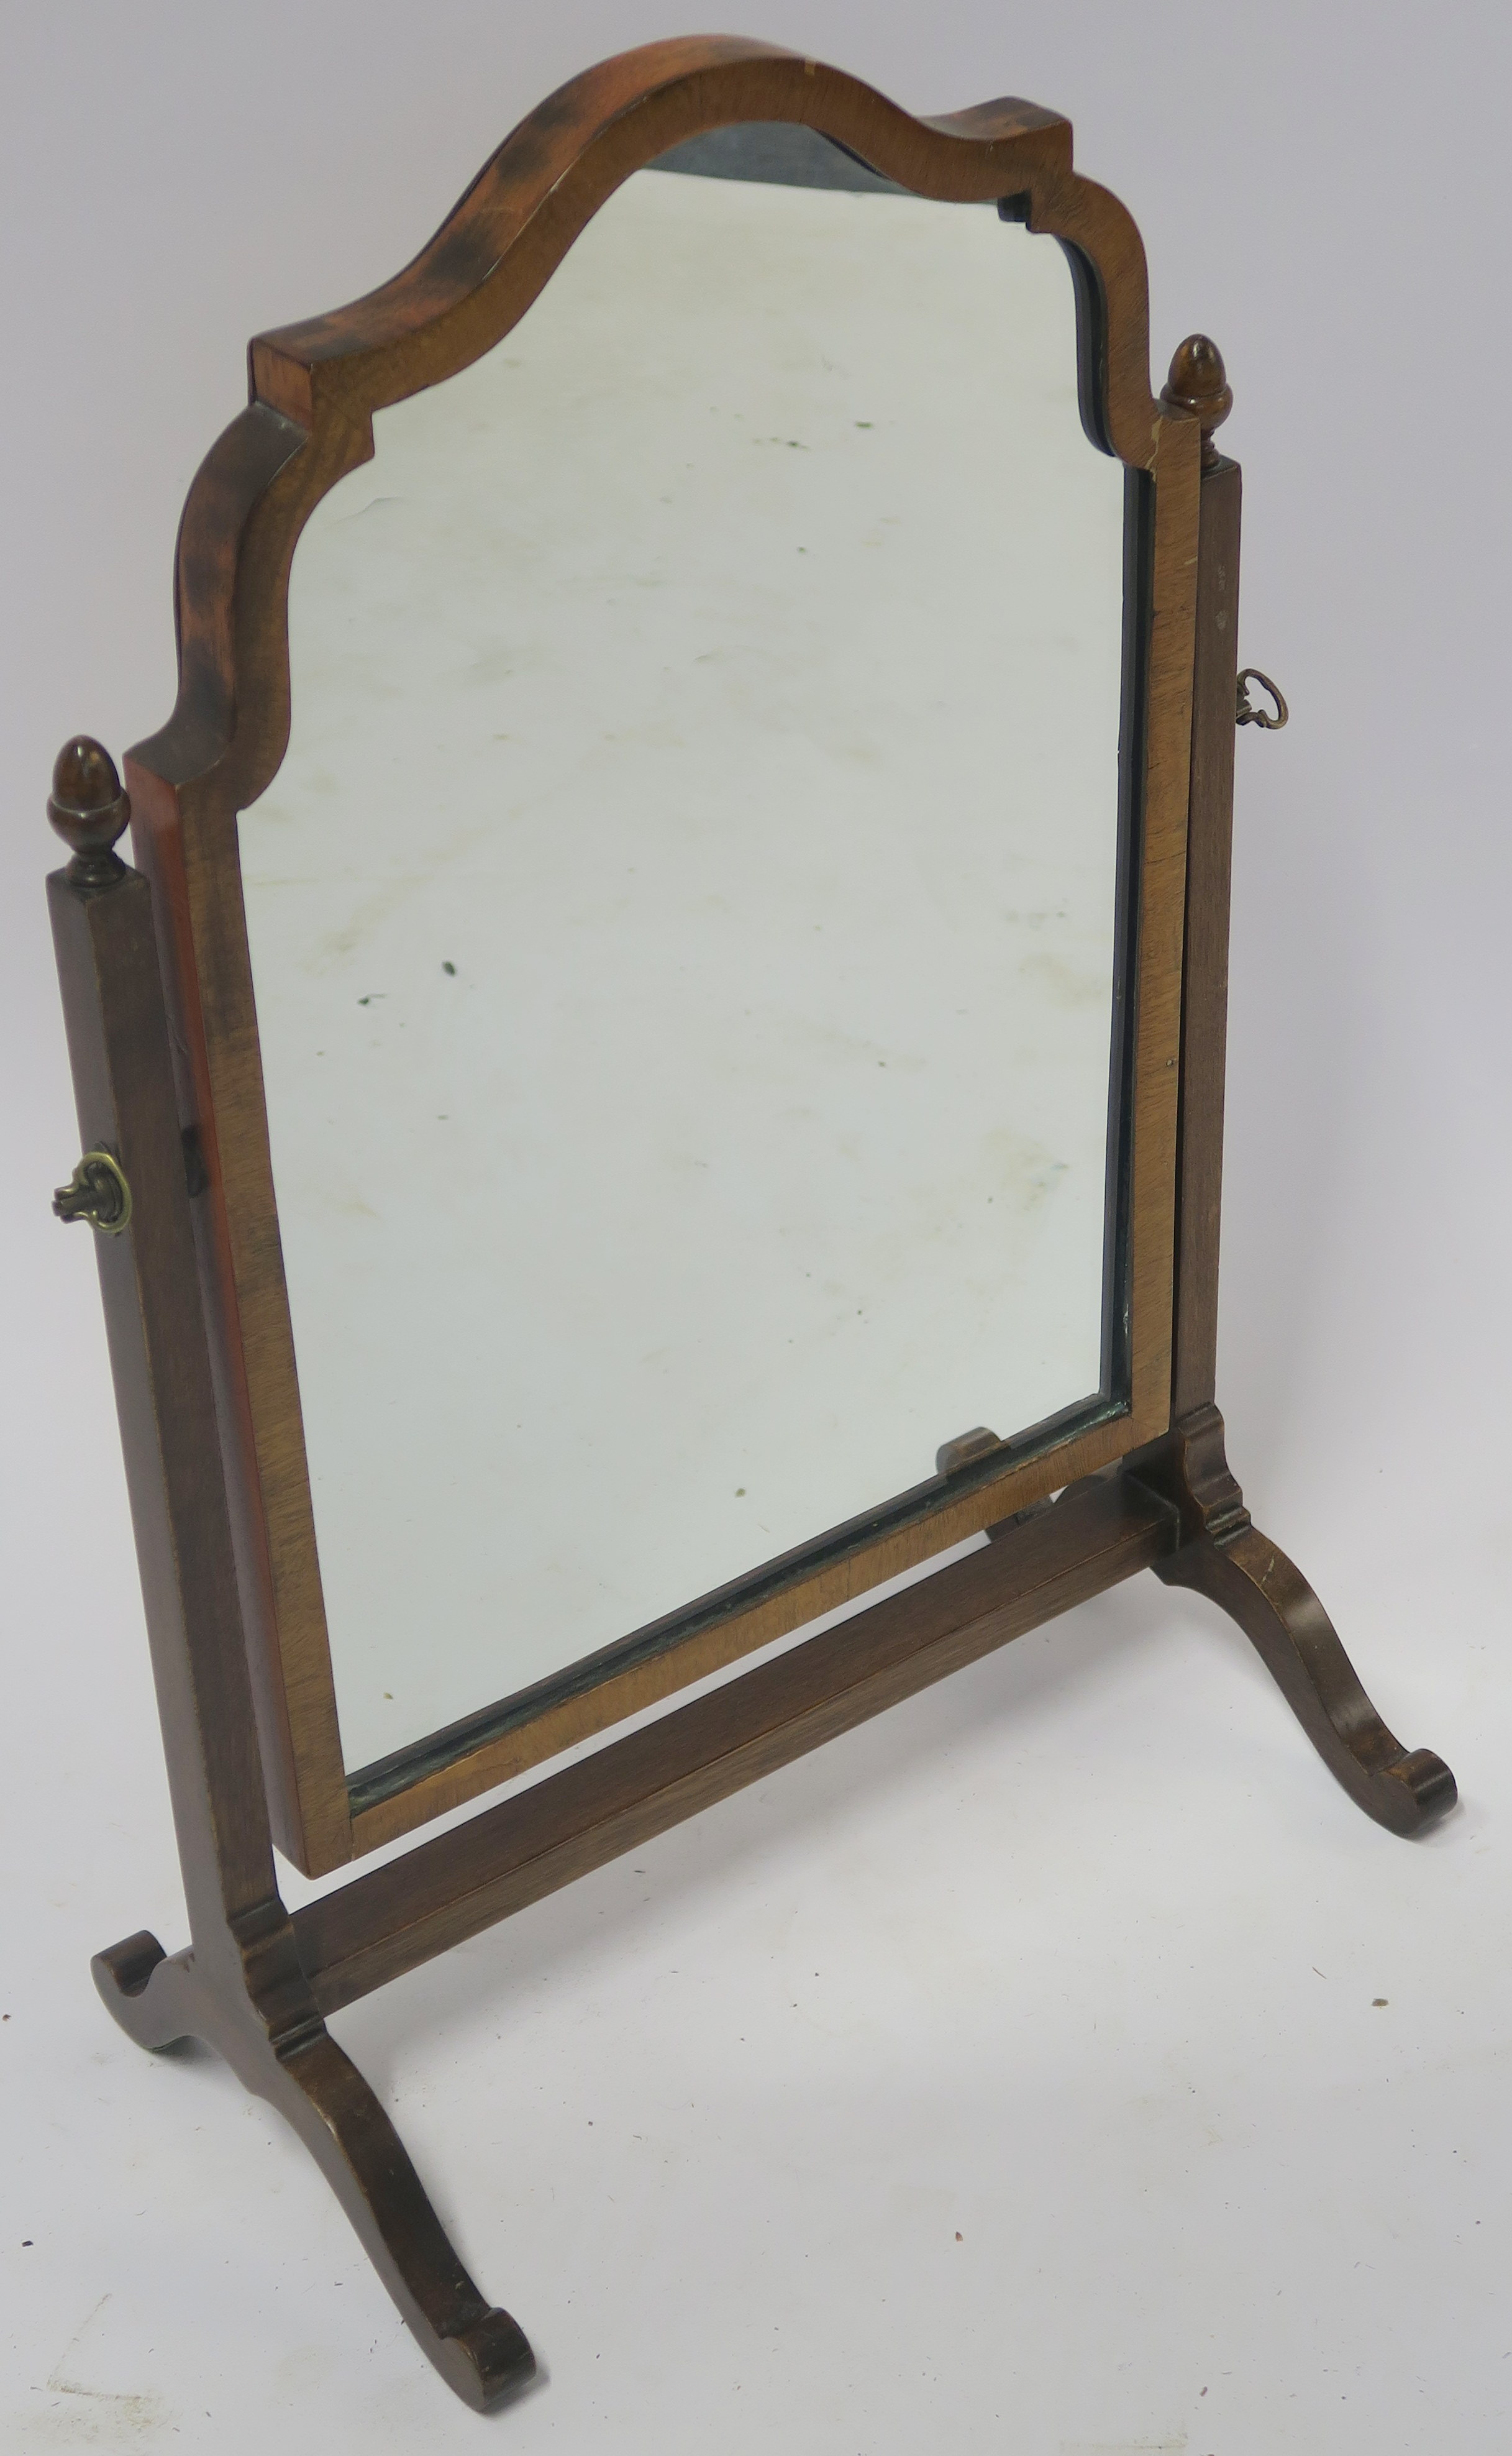 A WALNUT TOILET MIRROR 59cm high Condition Report: Available upon request